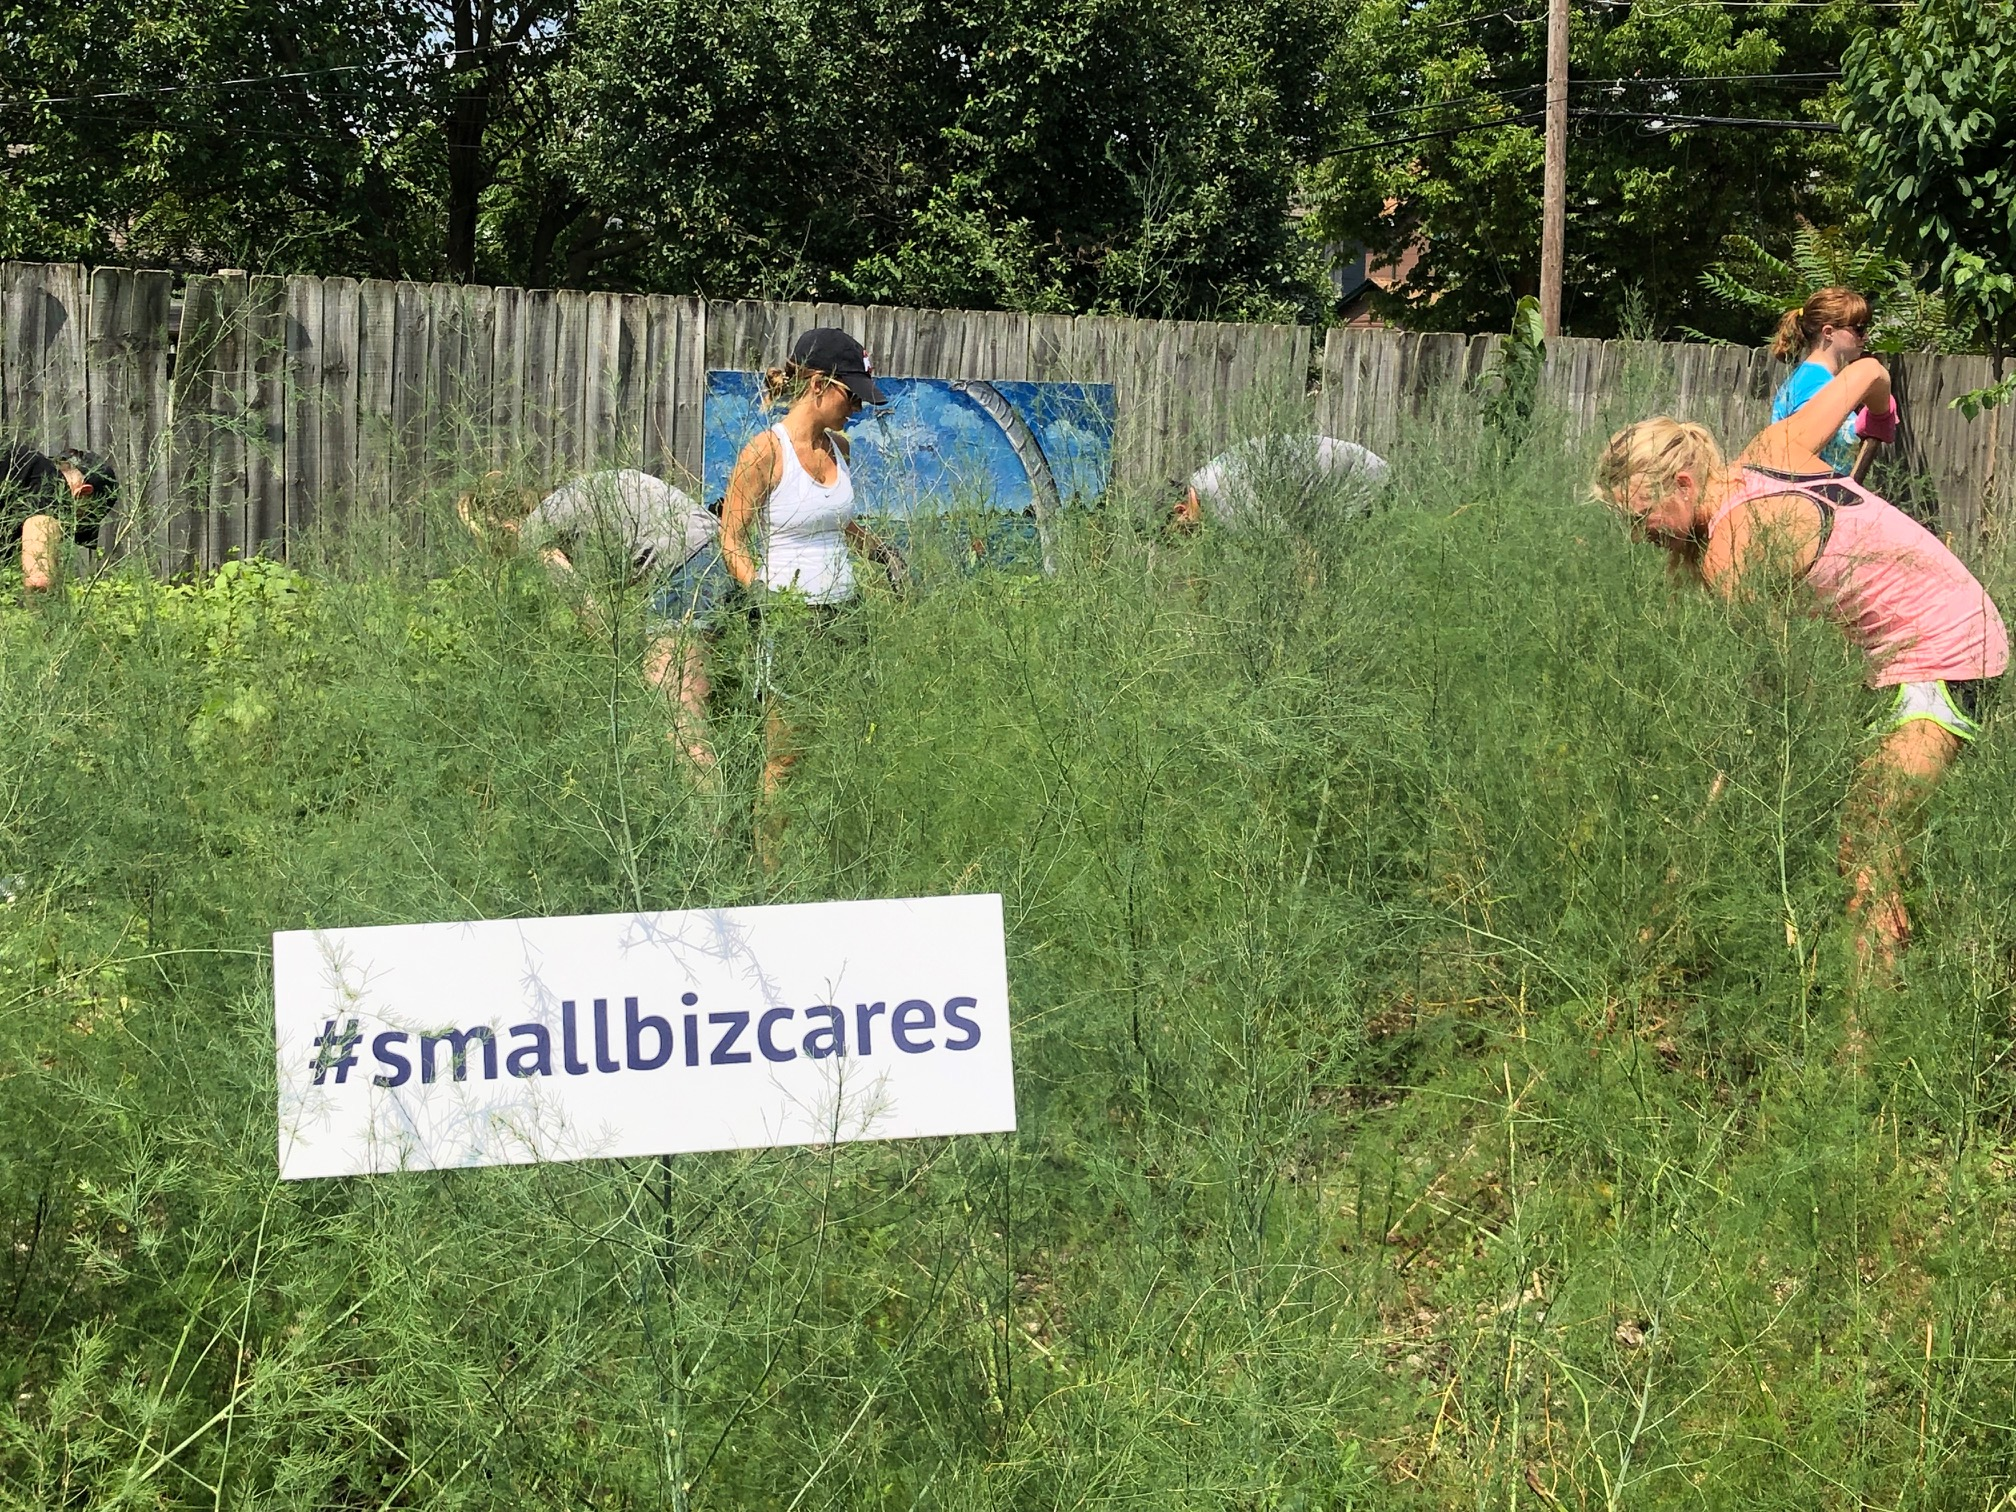 Small Biz Cares Columbus Ohio nonprofit volunteering in Columbus Ohio